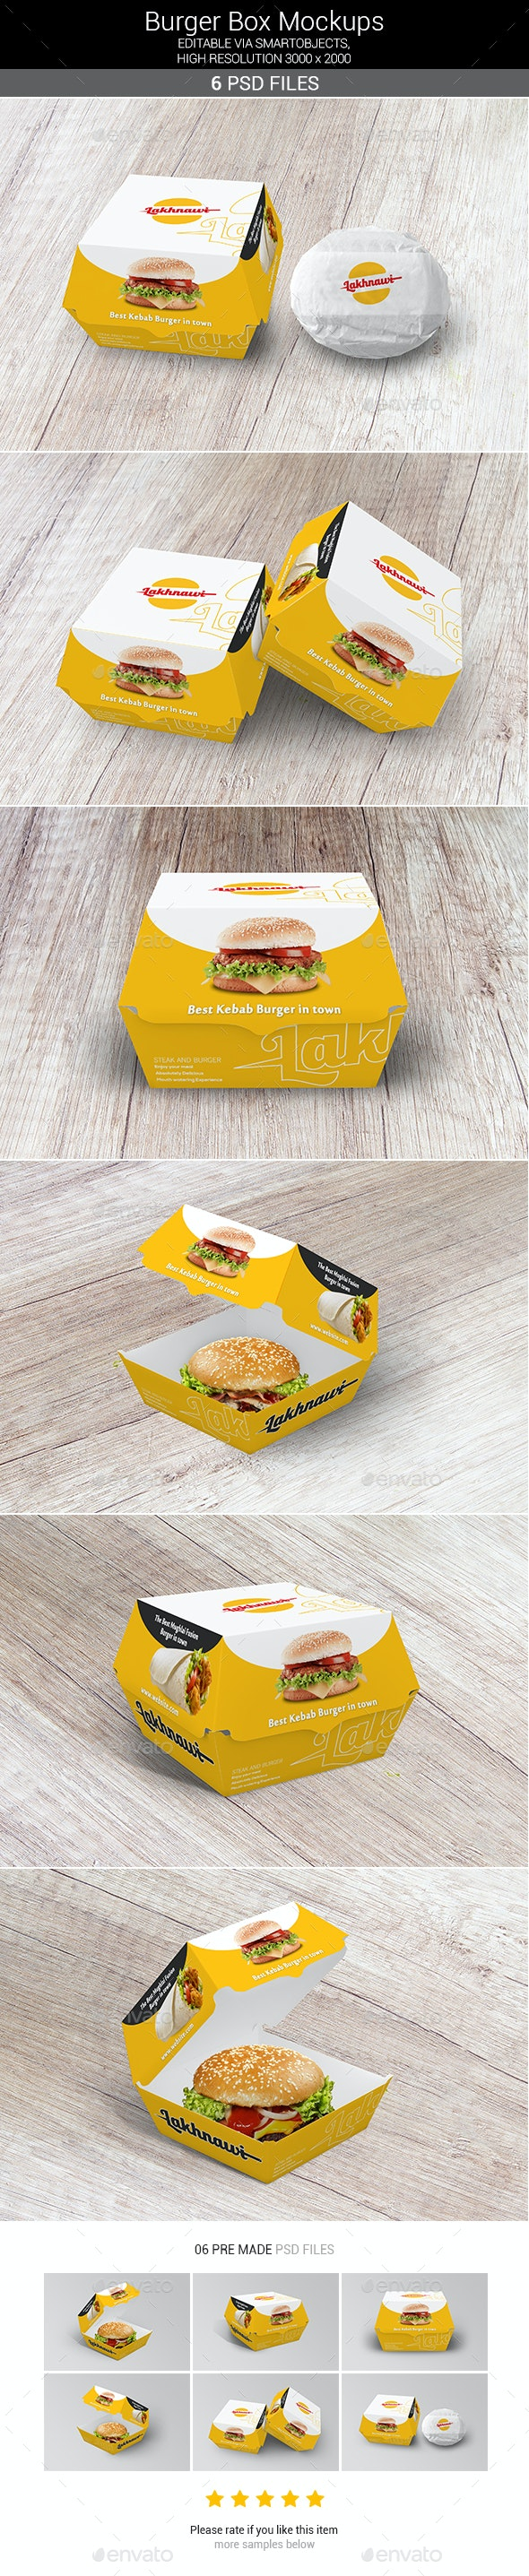 Burger Box Mockups - Food and Drink Packaging